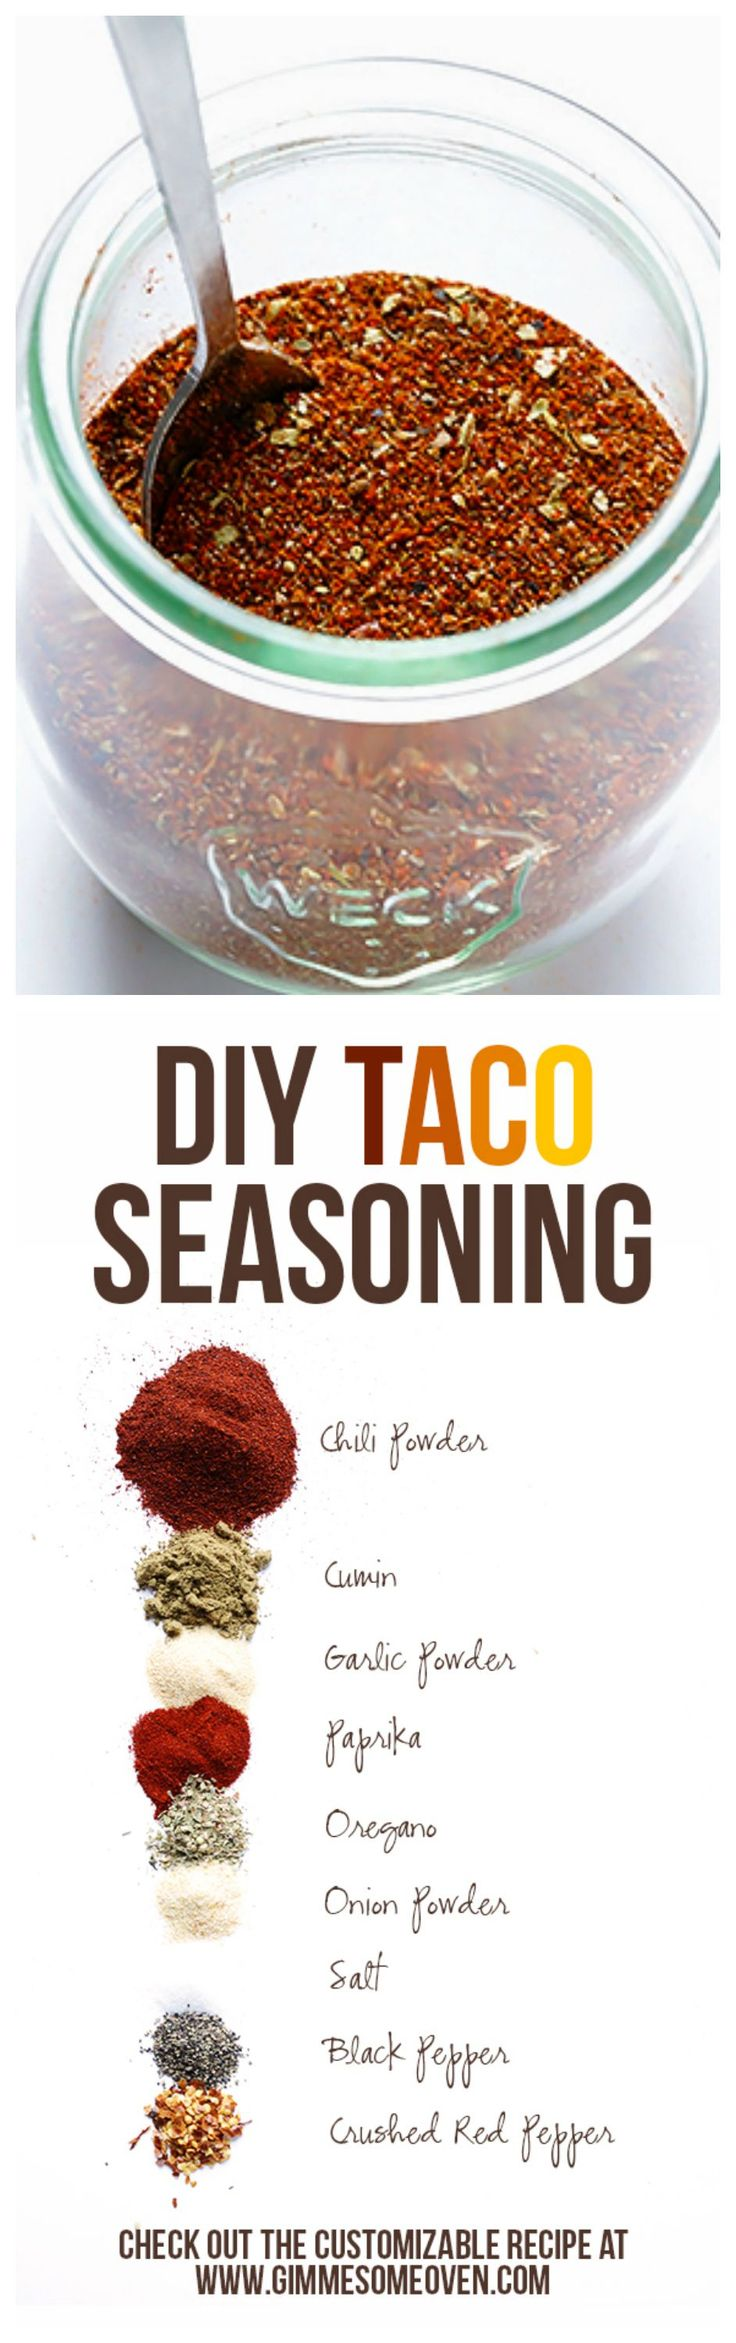 185 Best images about Food•Spice Info on Pinterest | Chili ...